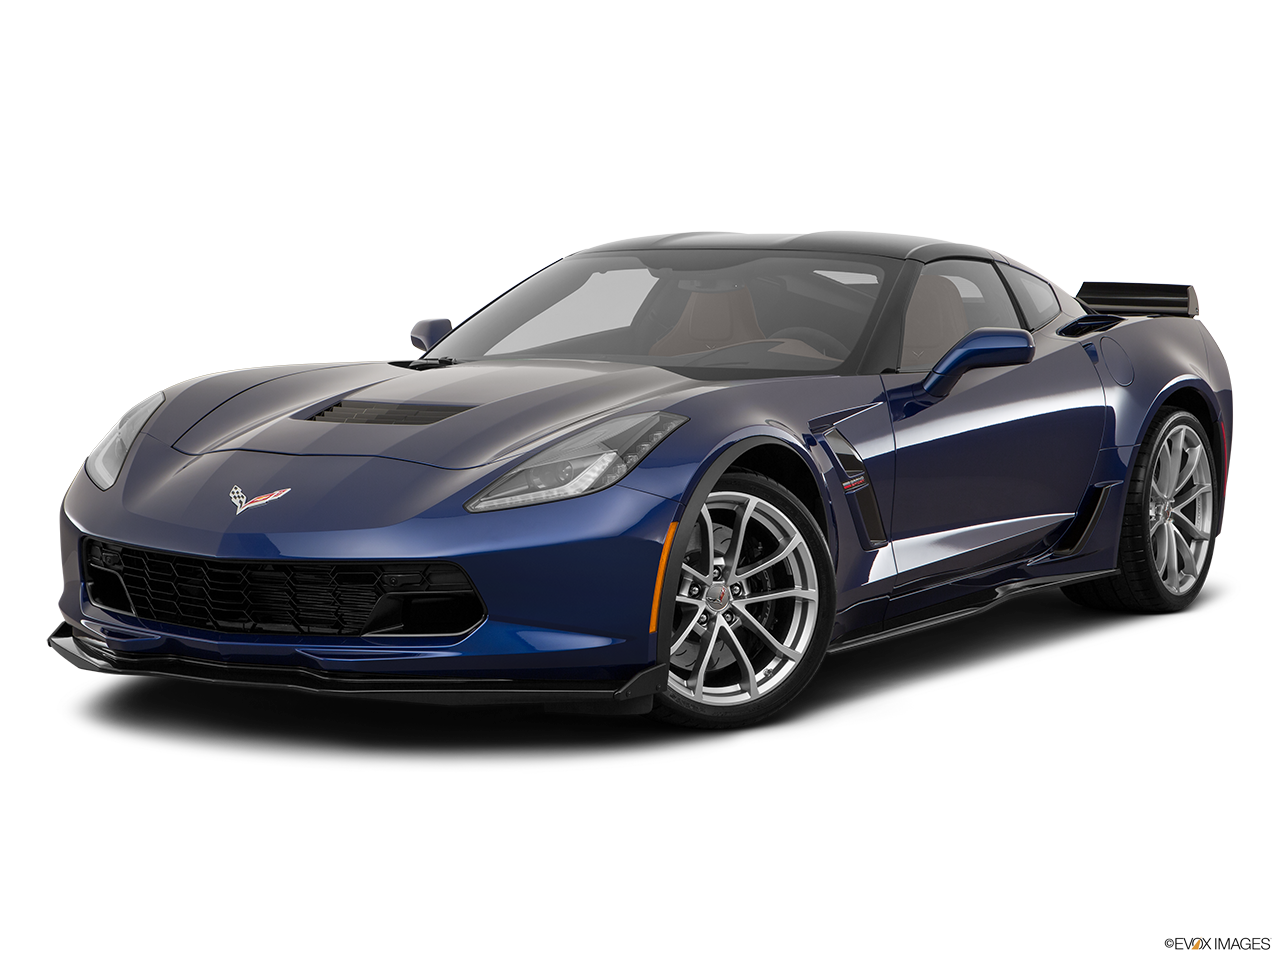 2017 chevrolet corvette grand sport at champion chevrolet in reno. Cars Review. Best American Auto & Cars Review